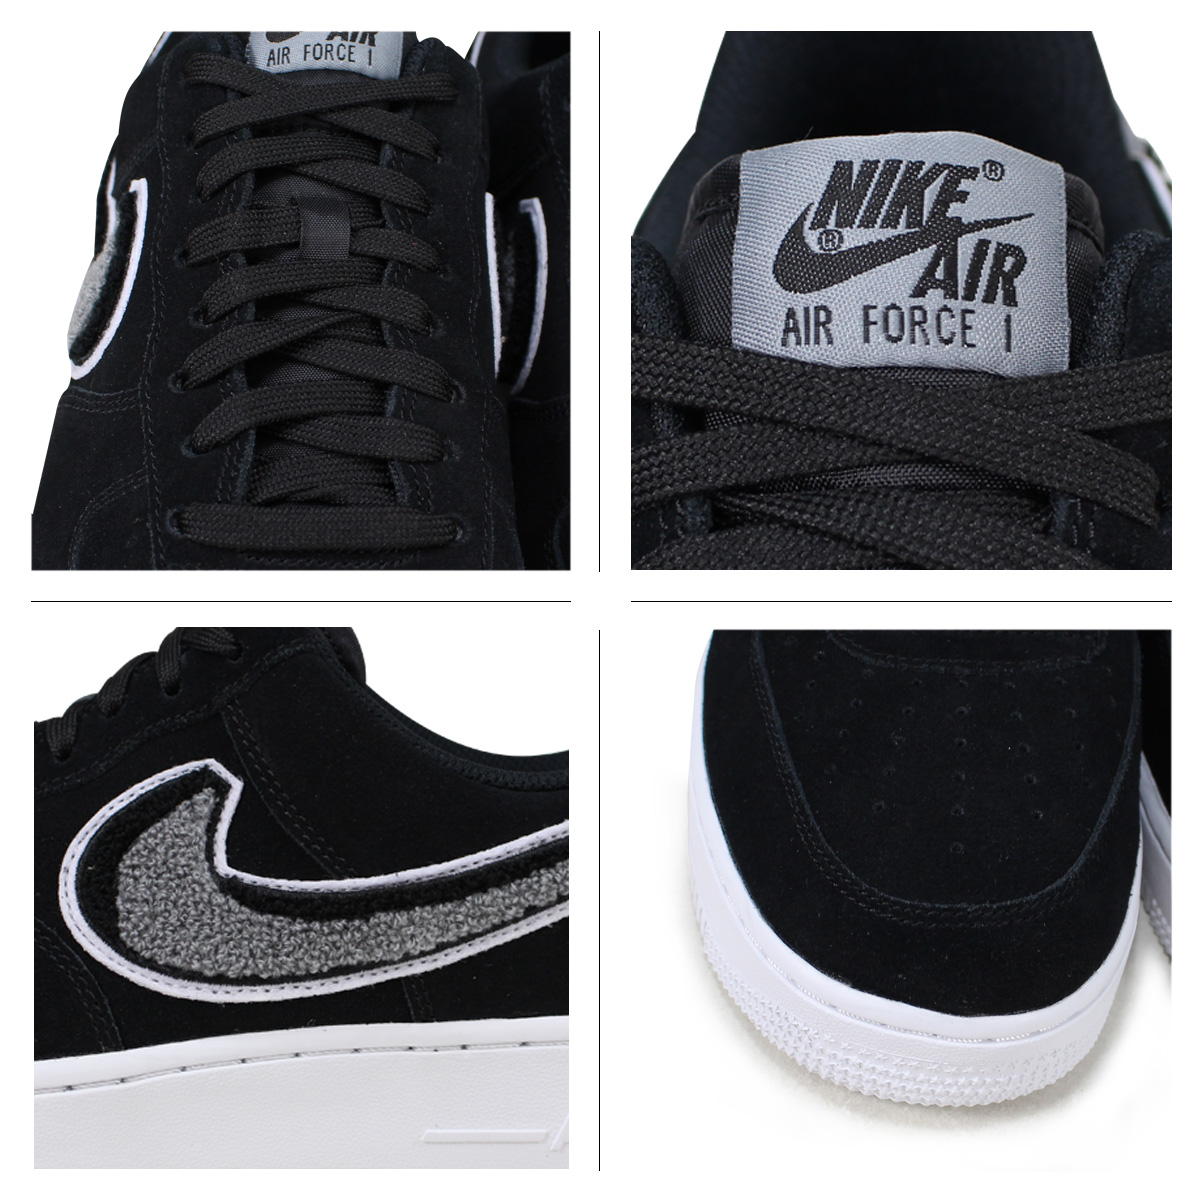 reputable site 451c5 a801f NIKE Nike air force 1 sneakers men AIR FORCE 1 07 LV8 823,511-014 black   load planned Shinnyu load in reservation product 6 28 containing